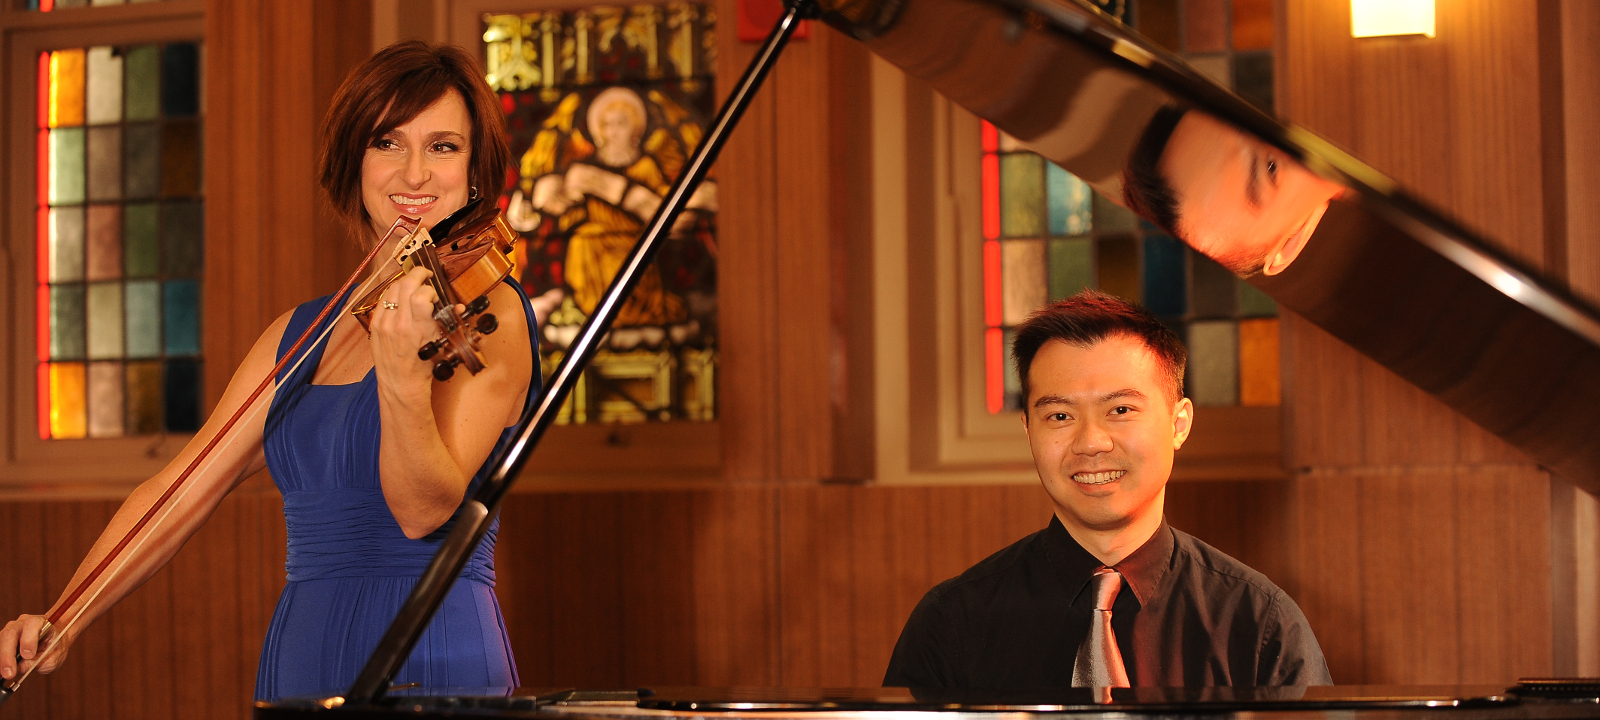 Faculty Chamber Music Recital on October 20th